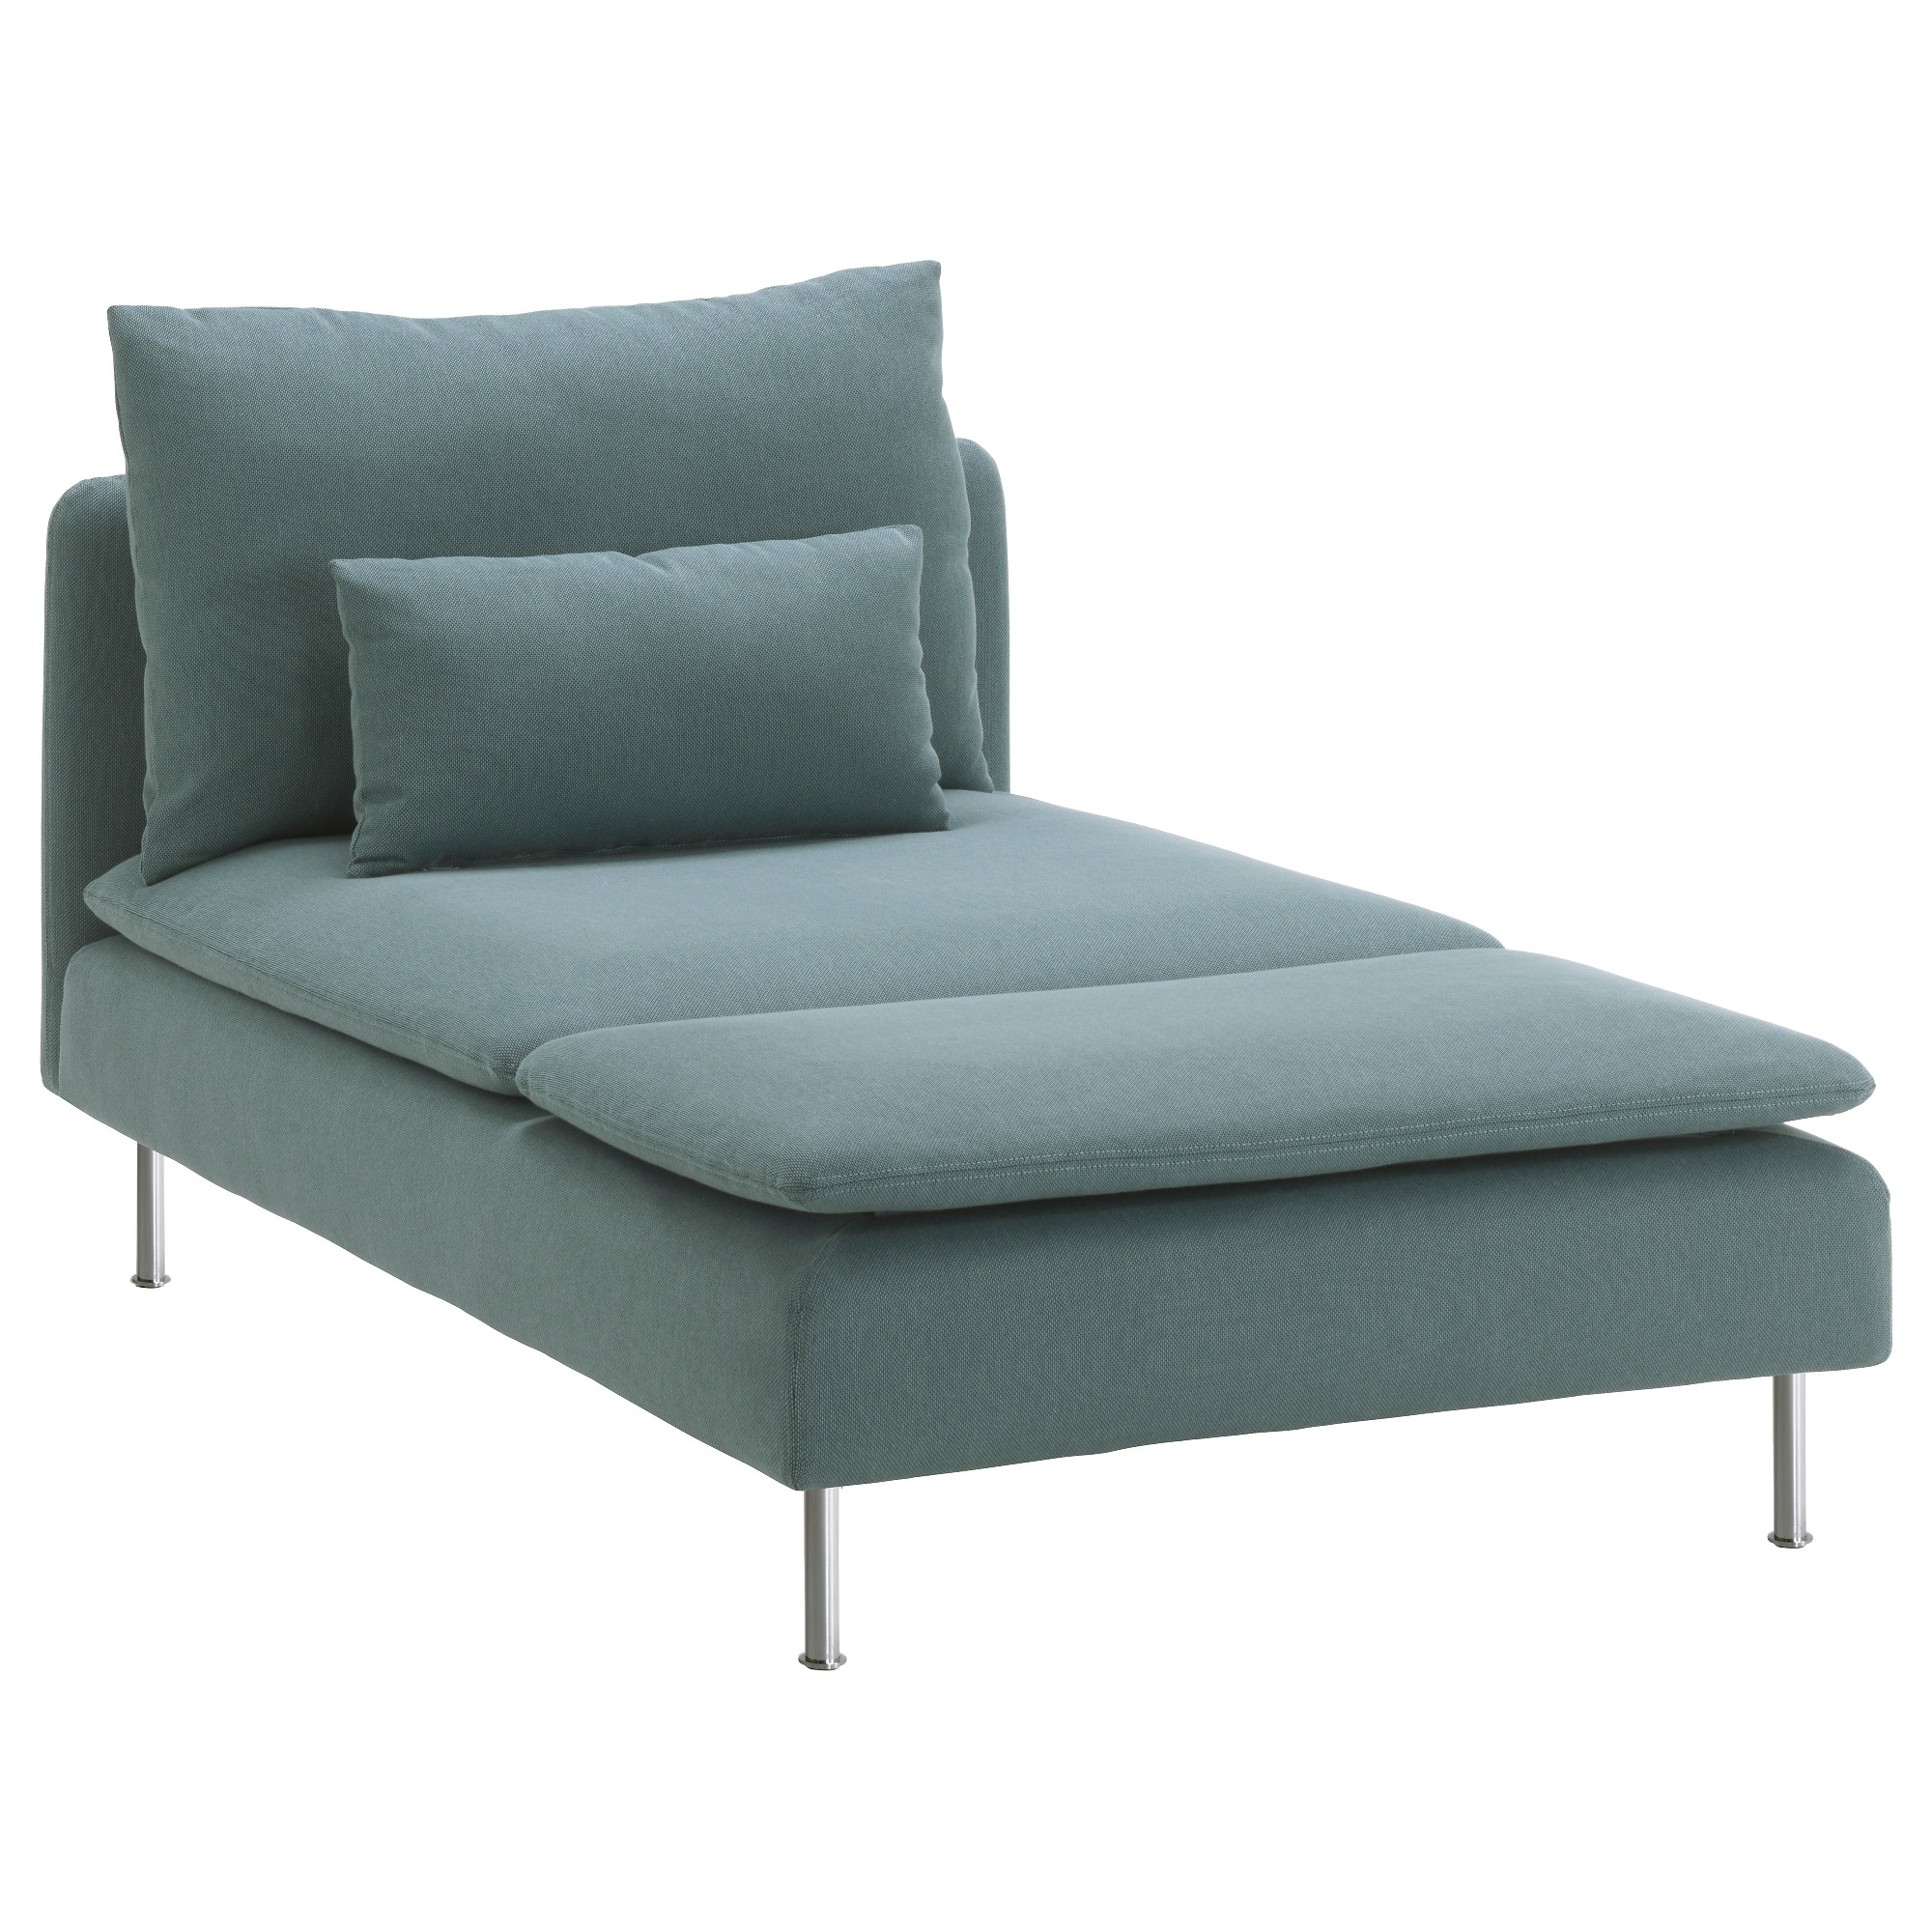 Most Recent Söderhamn Chaise – Samsta Dark Gray – Ikea With Regard To Ikea Chaise Lounge Chairs (View 9 of 15)